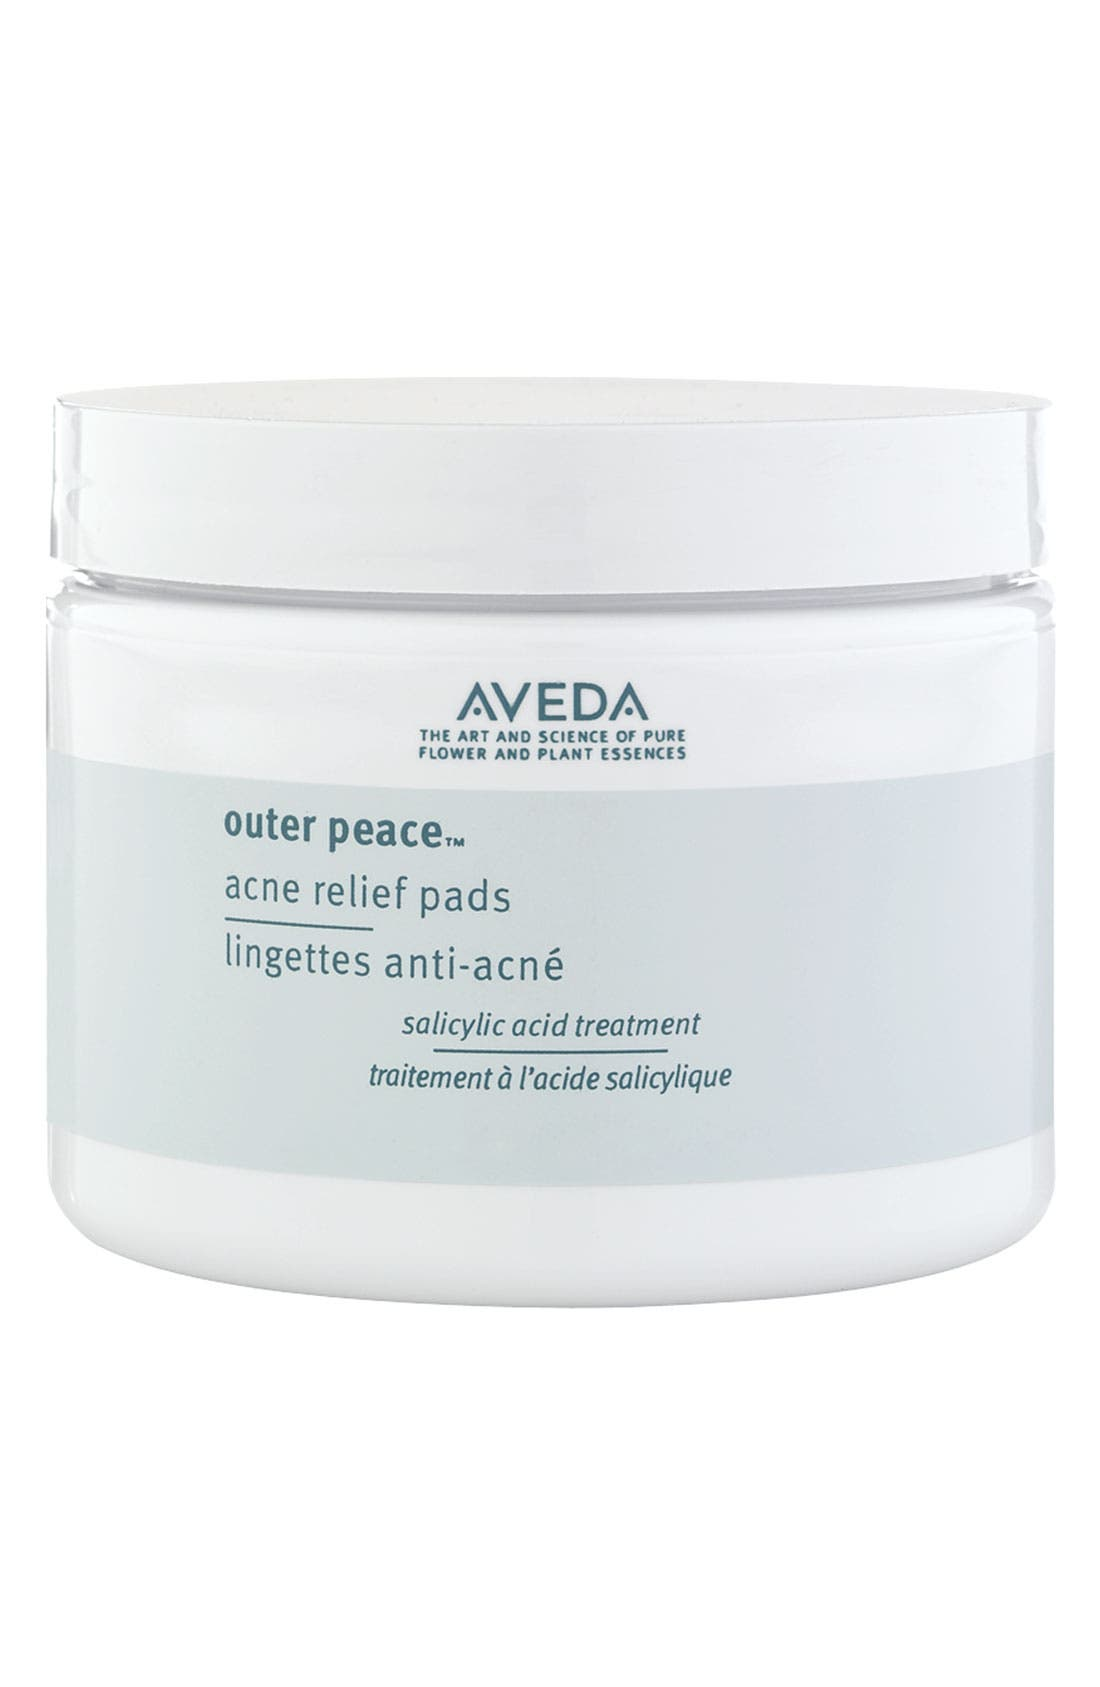 Aveda Outer Peace(TM) Acne Relief Pads